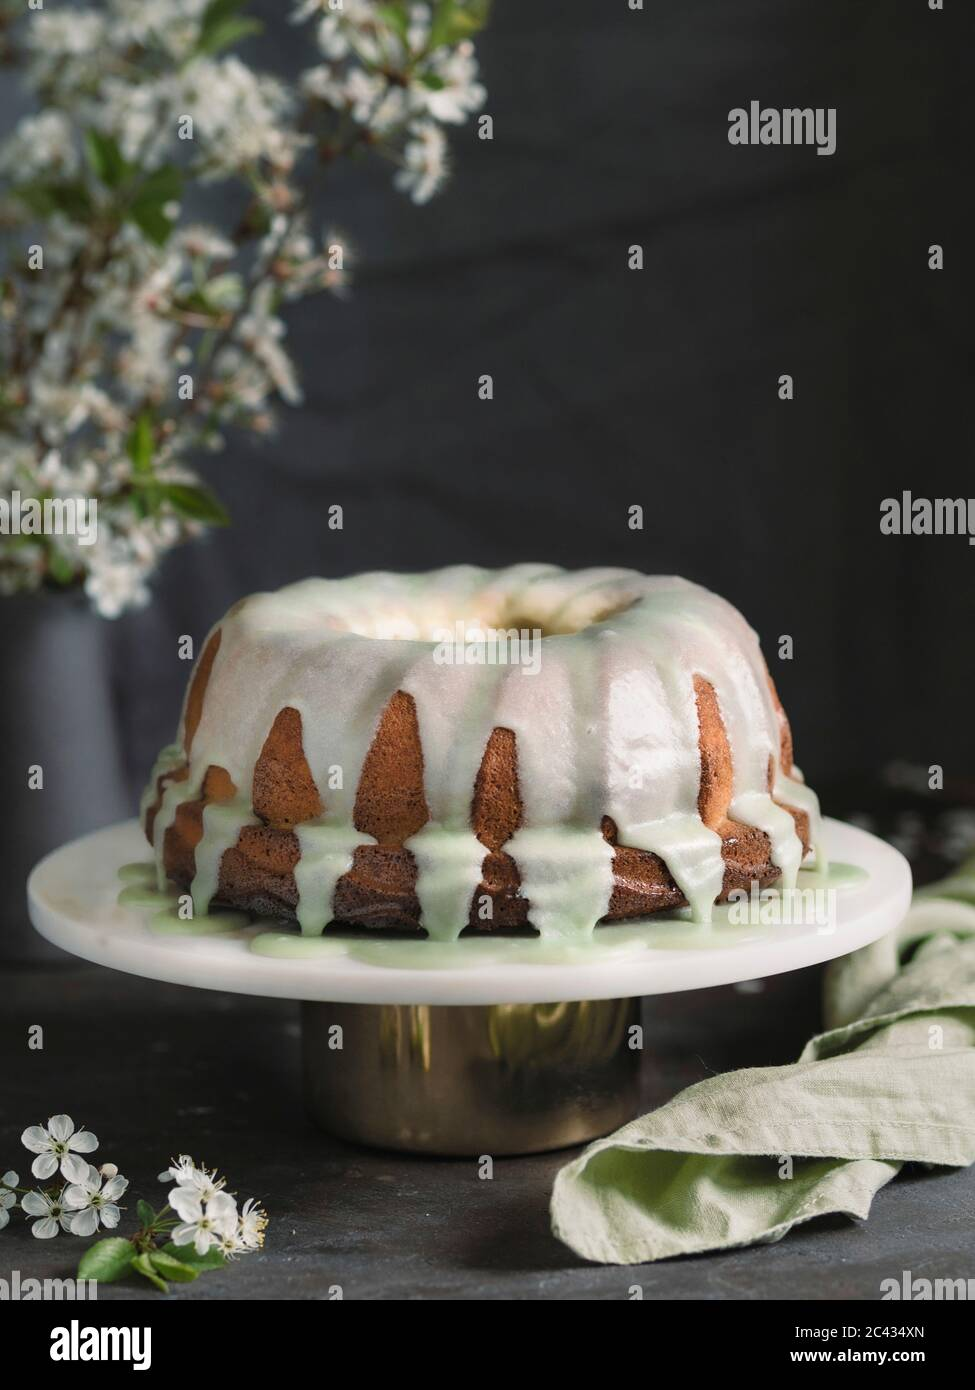 Bundt Cake With Green Matcha Glaze On White Marble Cake Stand Over Dark Table With Bouquet Of Blossoming Cherry Or Pear Branches Copy Space Top Over Stock Photo Alamy